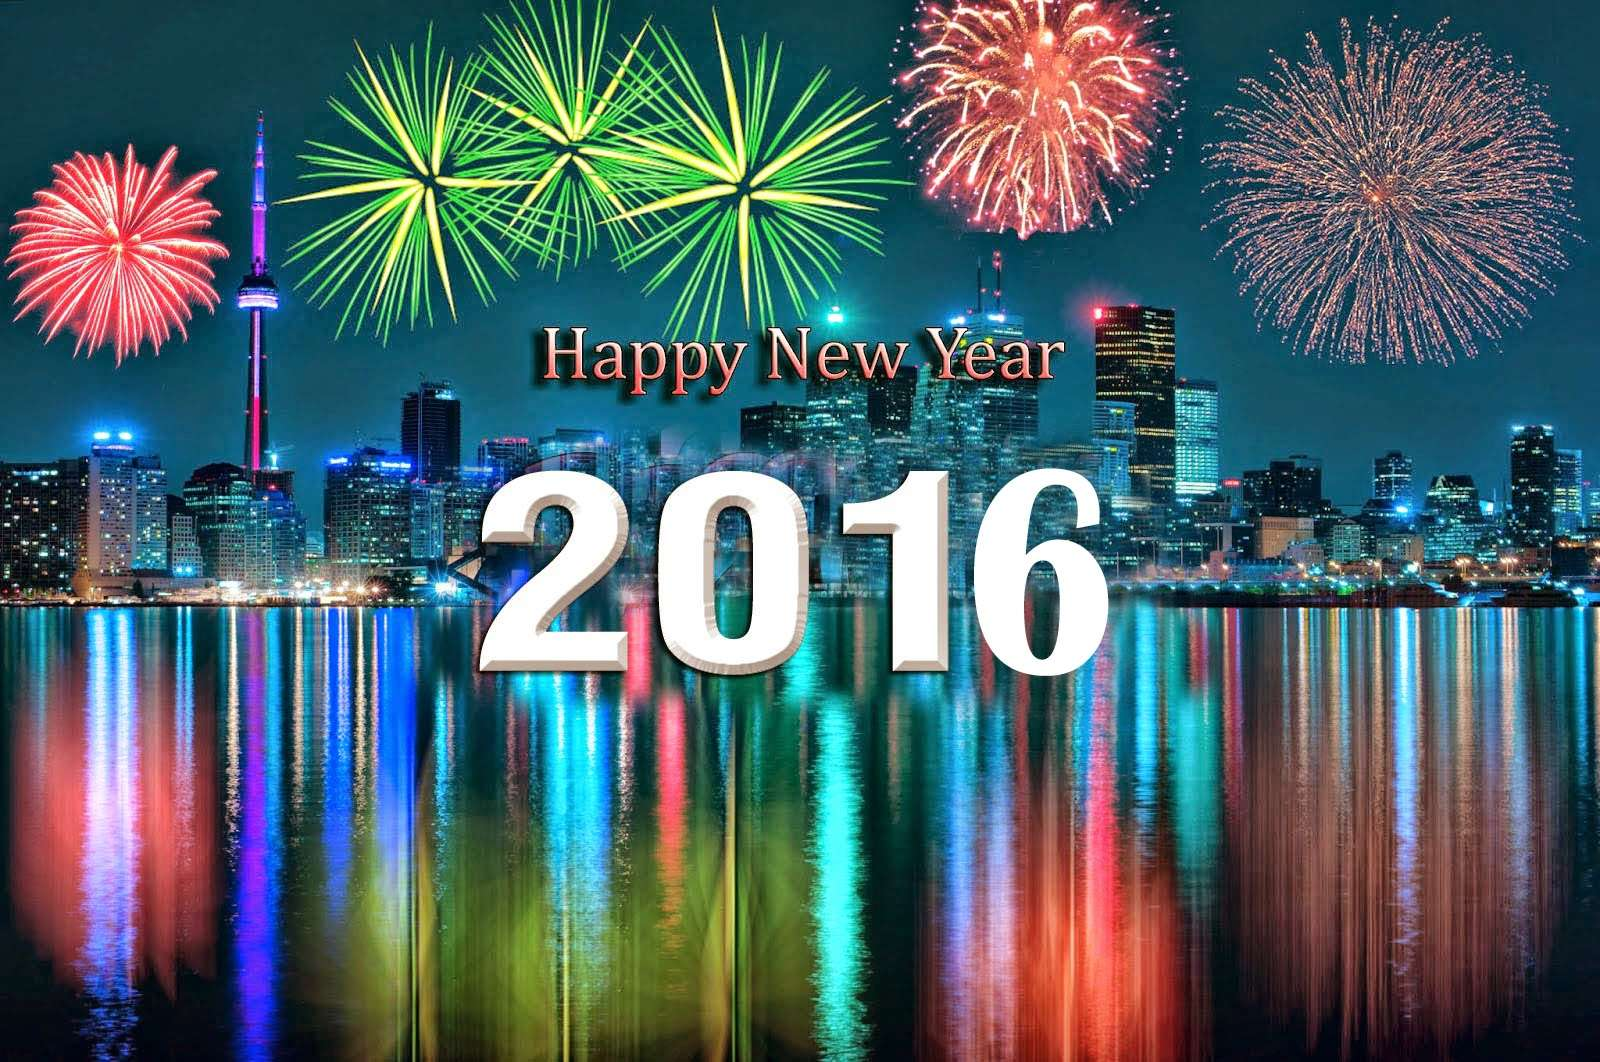 Collection Of Happy New Year Pictures For Greeting Cards Whatsapp Dp